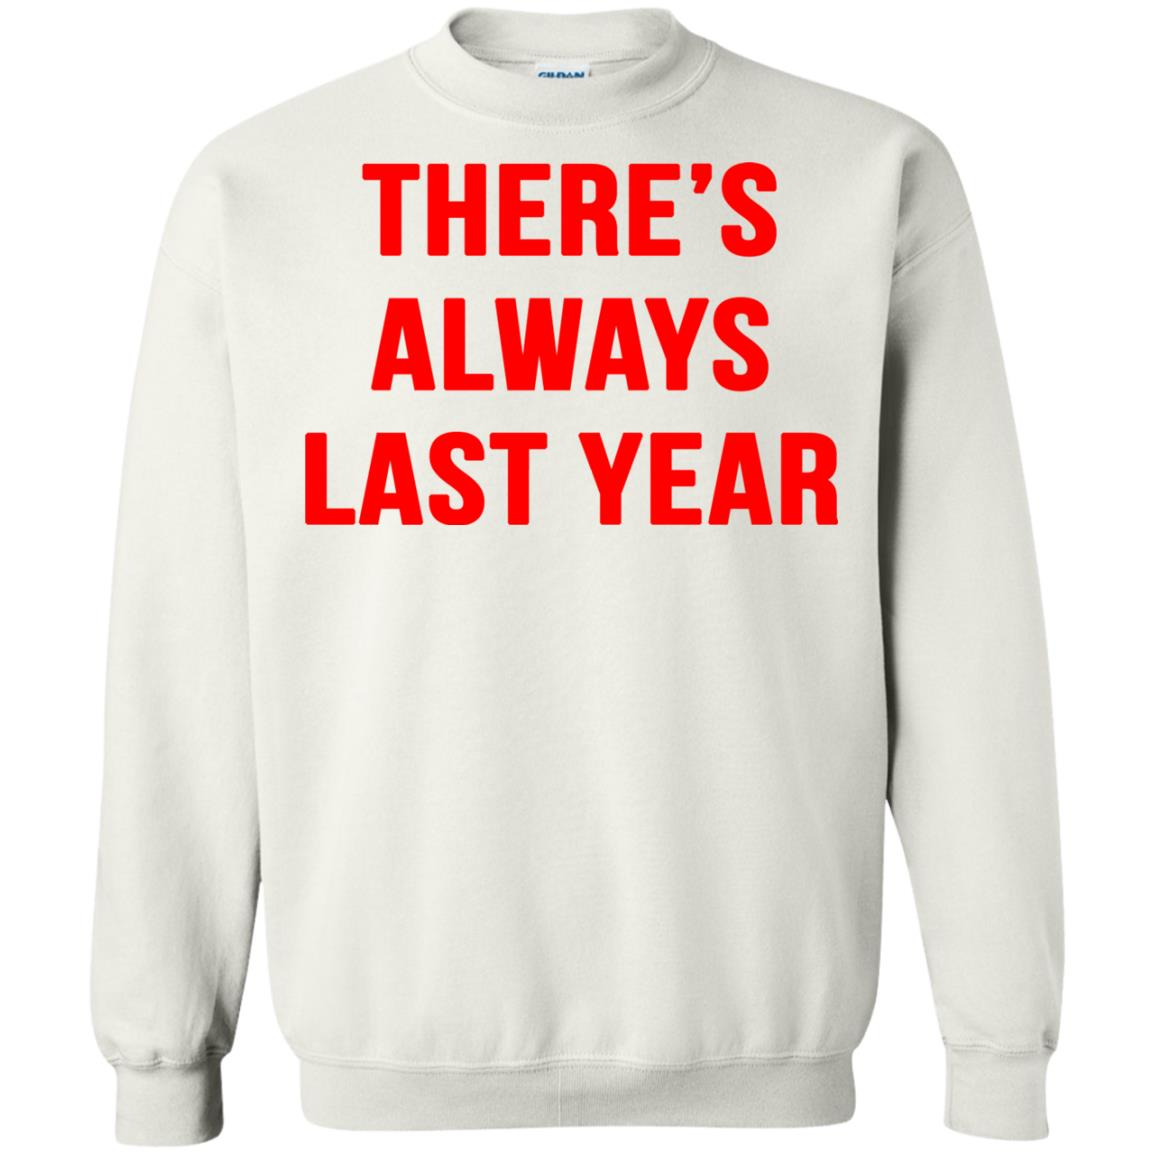 image 1922 - There's always last year t-shirt, long sleeve